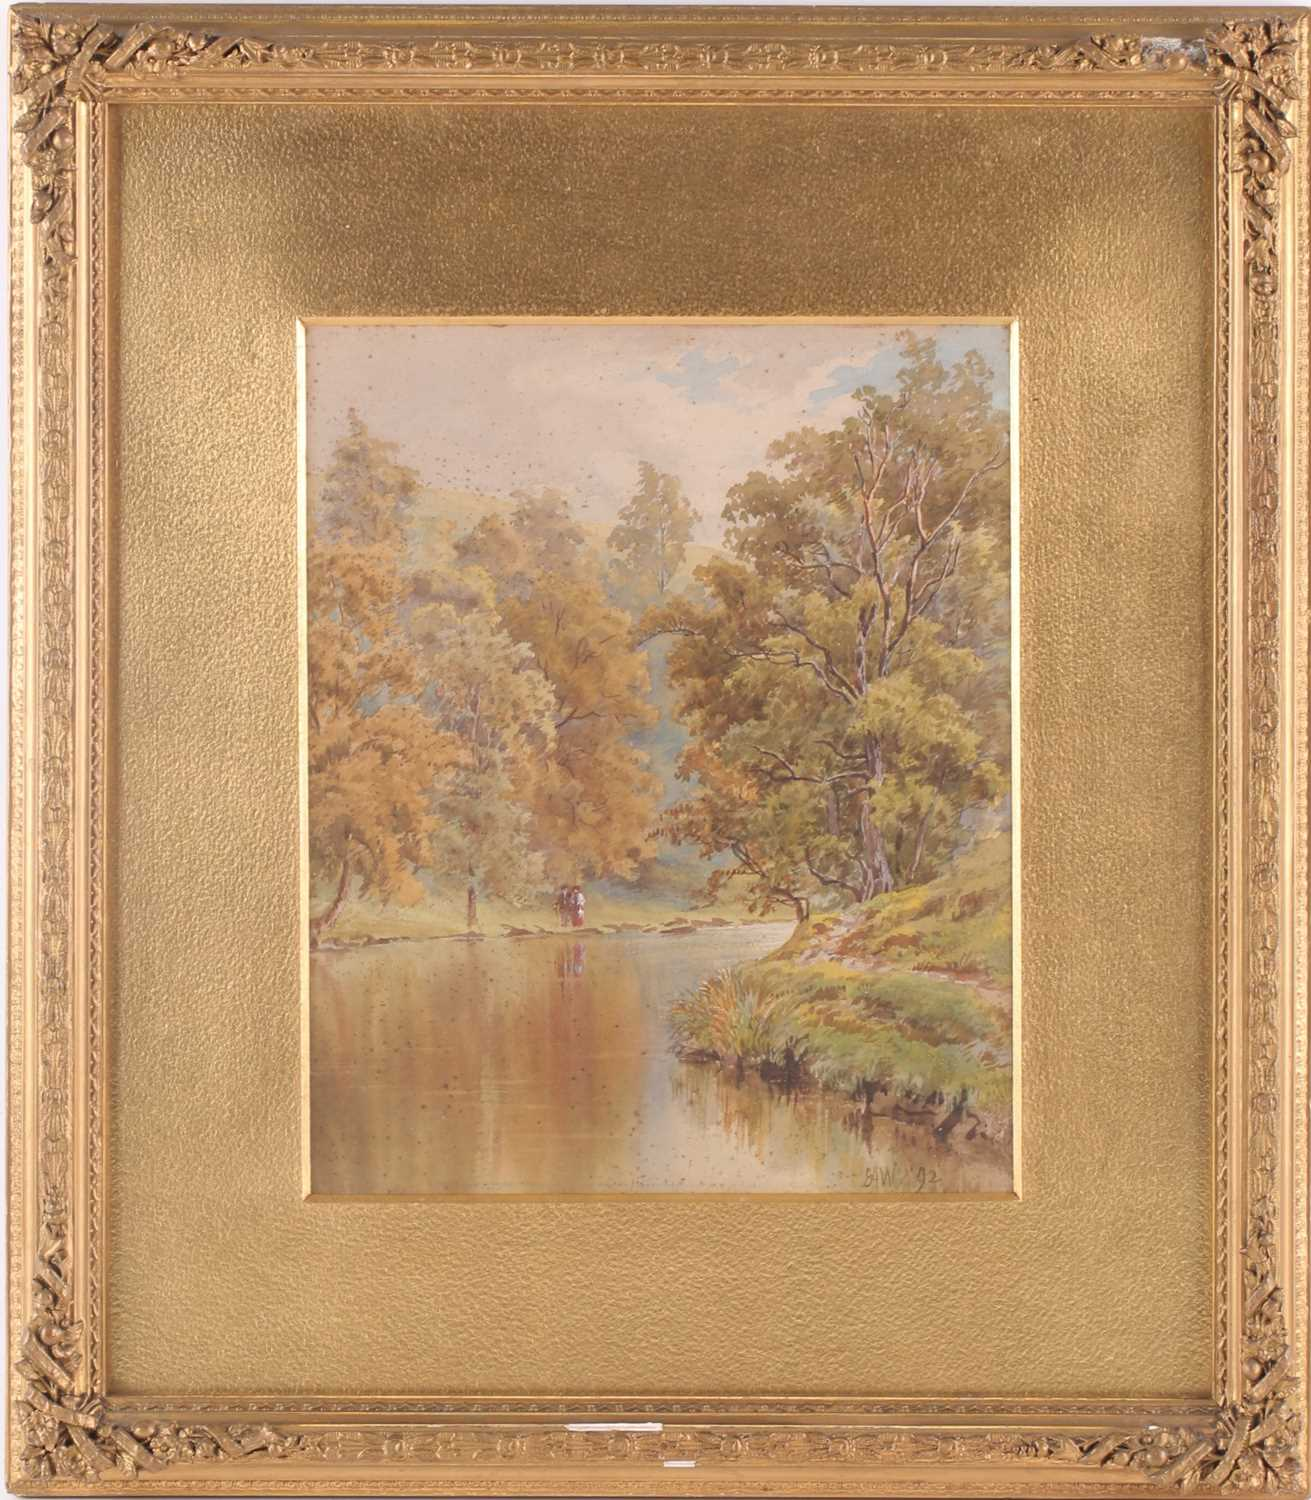 Ernest Albert Waterlow, (1850-1919), Walking in a river landscape, watercolour, signed with monogram